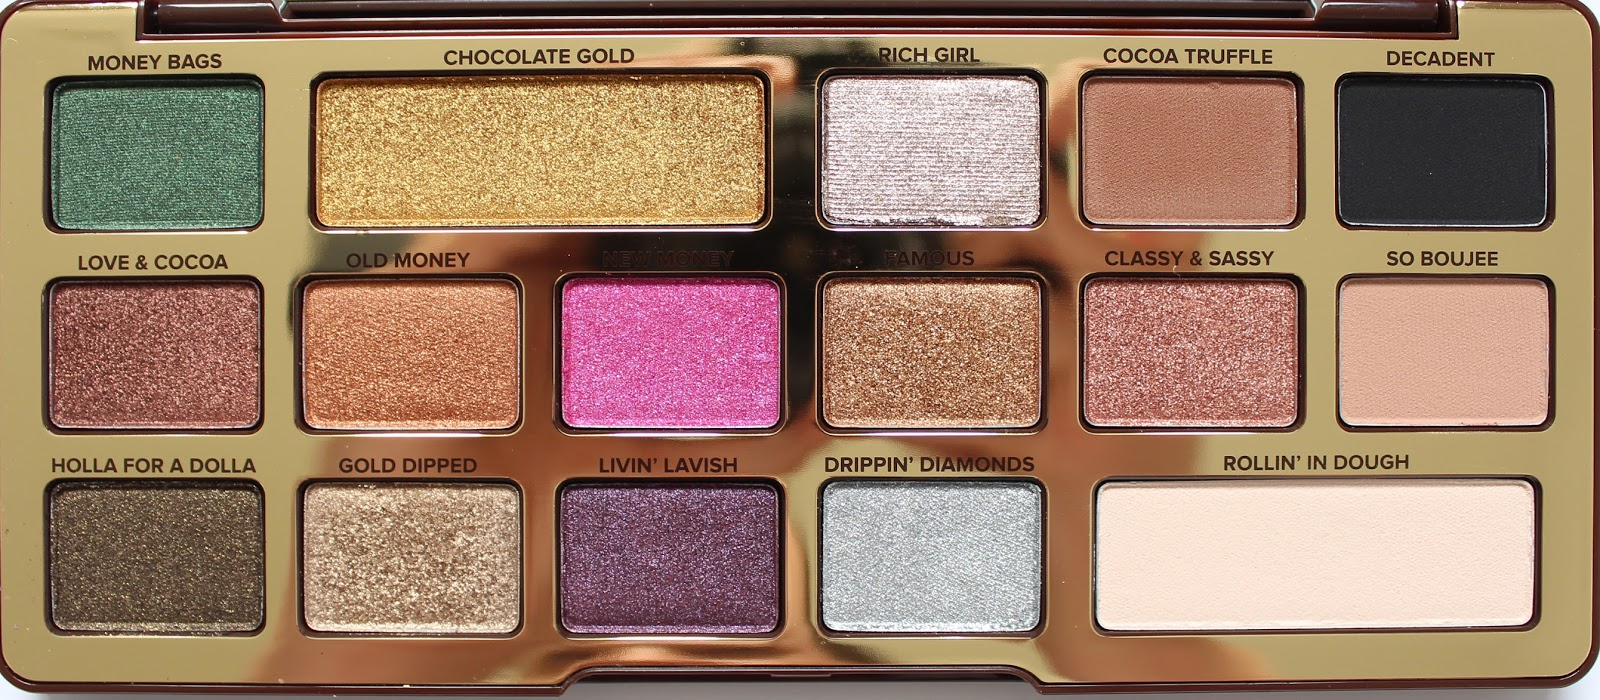 TOO FACED | Chocolate Gold Metallic/Matte Eyeshadow Palette - Review + Swatches - CassandraMyee